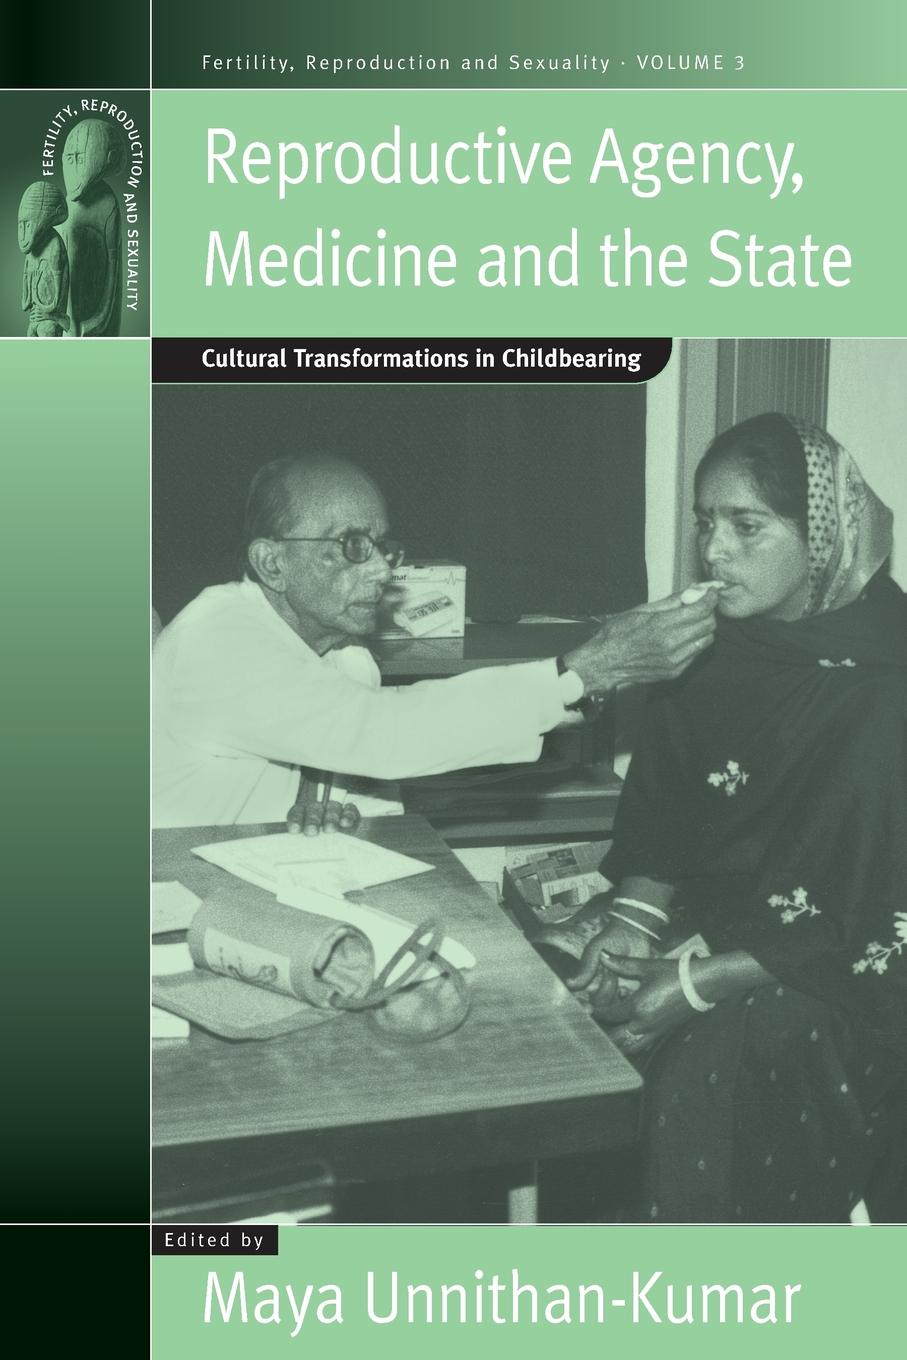 Reproductive Agency, Medicine and the State. Cultural Transformations in Childbearing emma derbyshire nutrition in the childbearing years